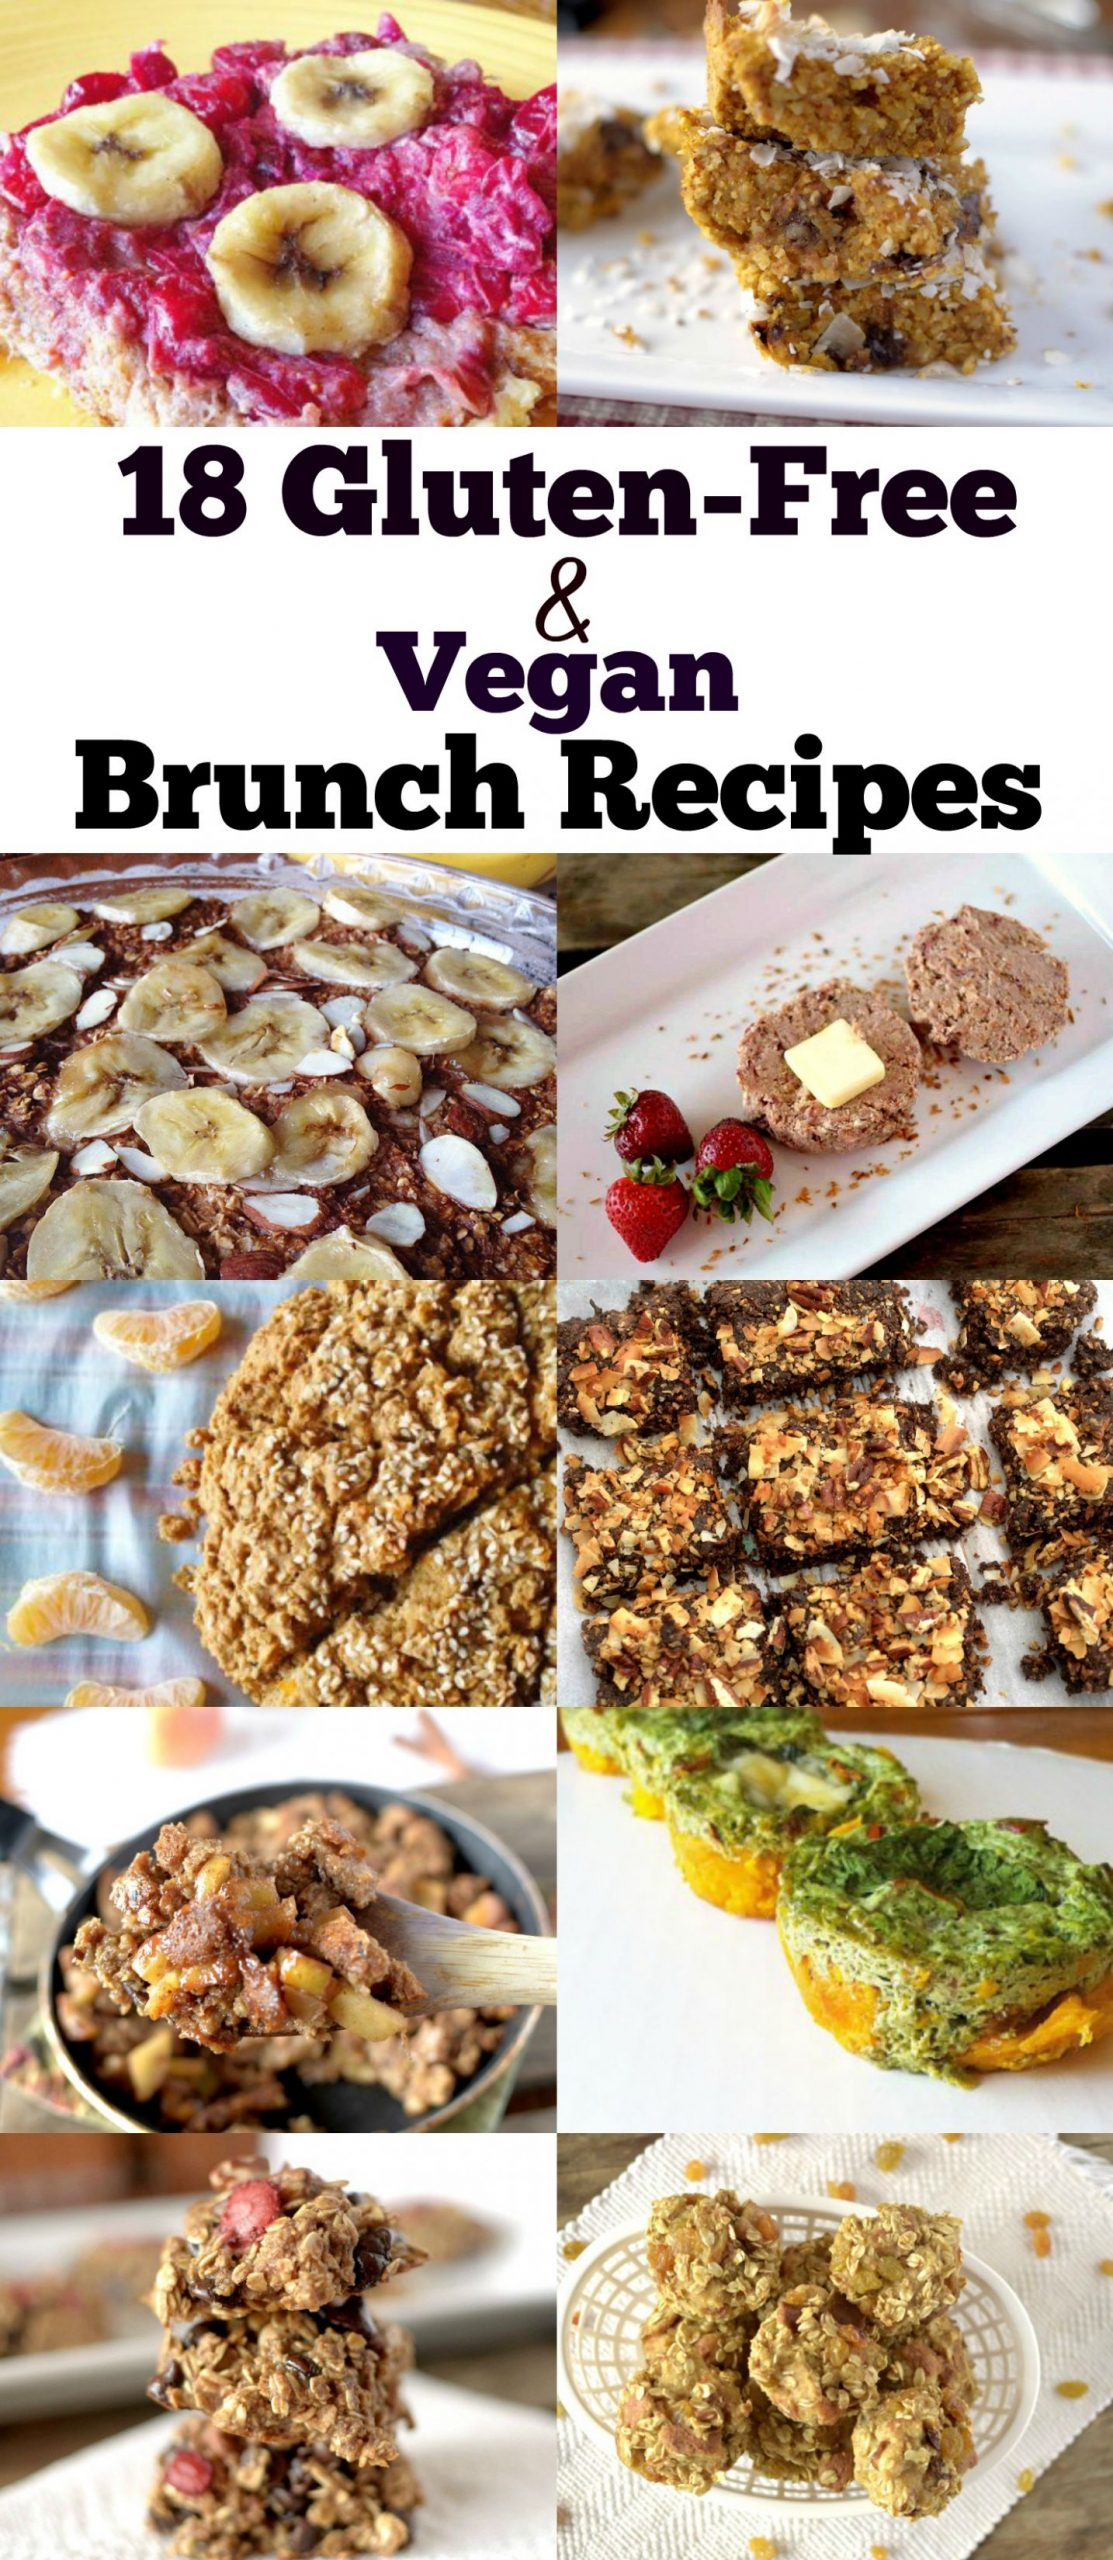 12 Gluten-Free and Vegan Brunch Recipes » Change your Food-it-tude ...